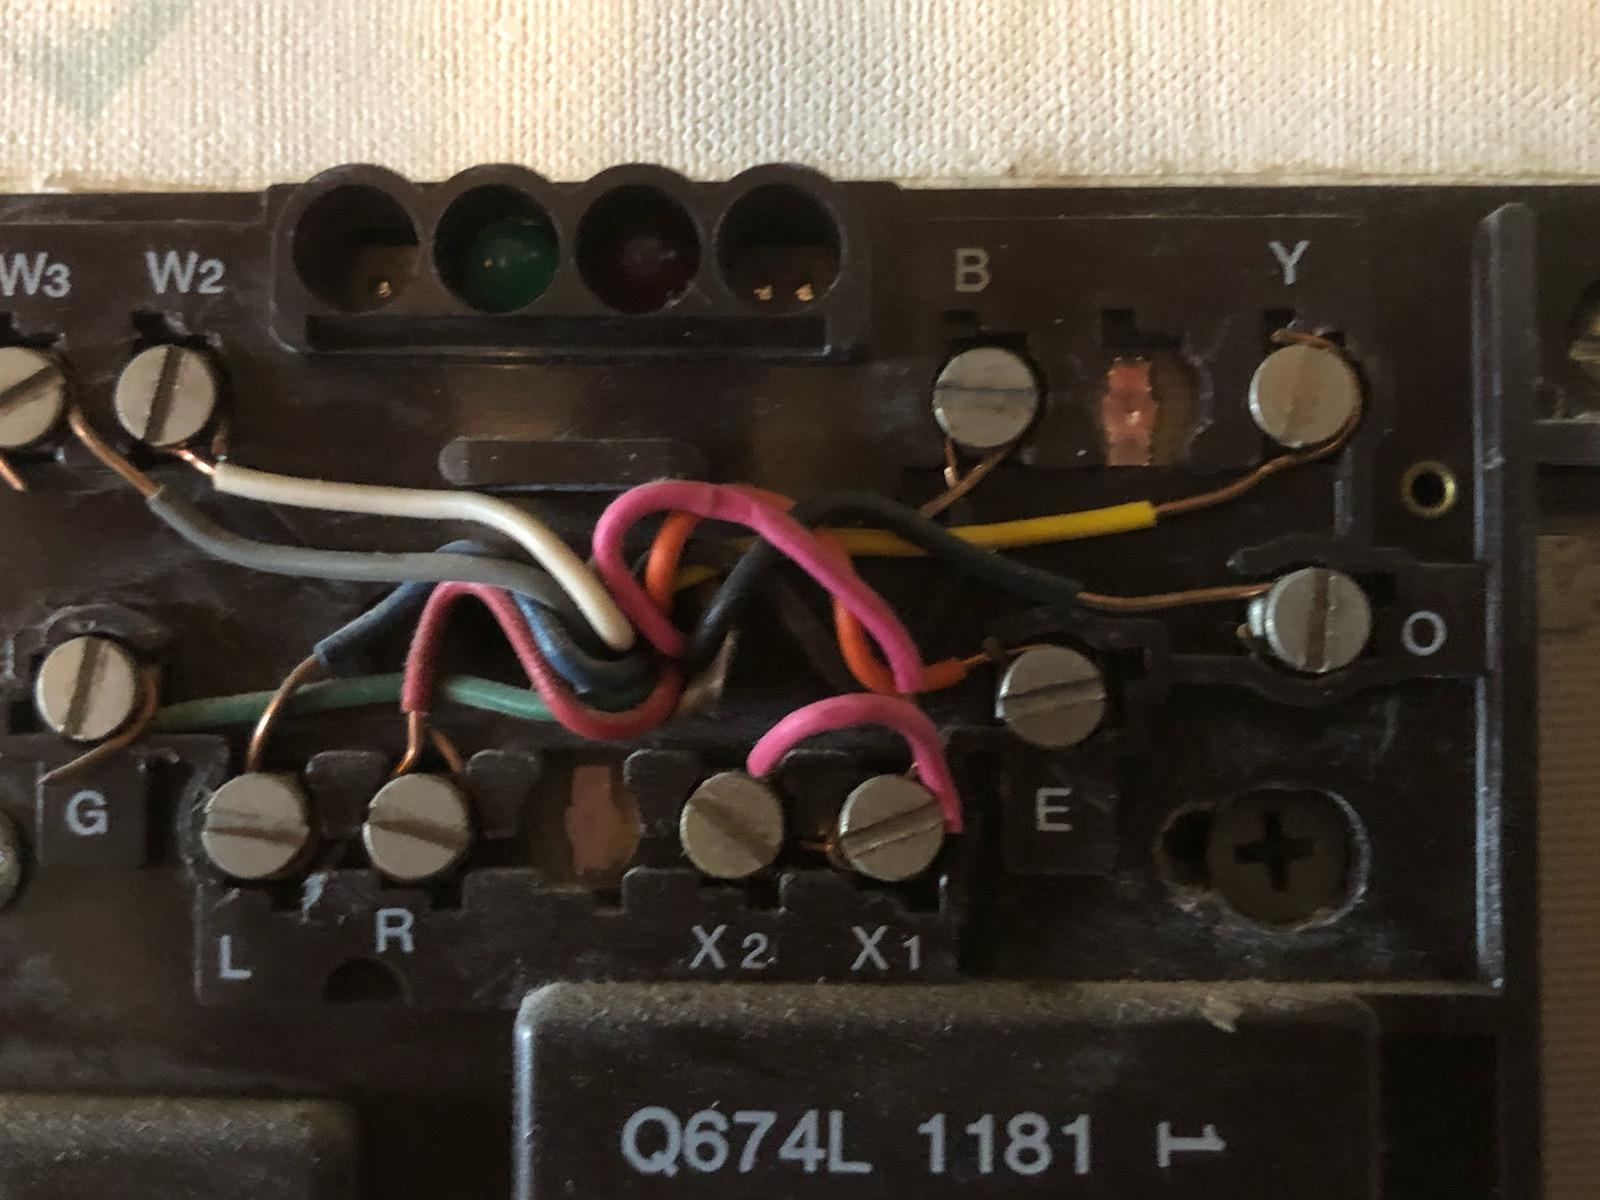 10-wires Honeywell T874R to RTH9585WF on Bard or ZoneAire Heat Pump?-img_1530.jpg